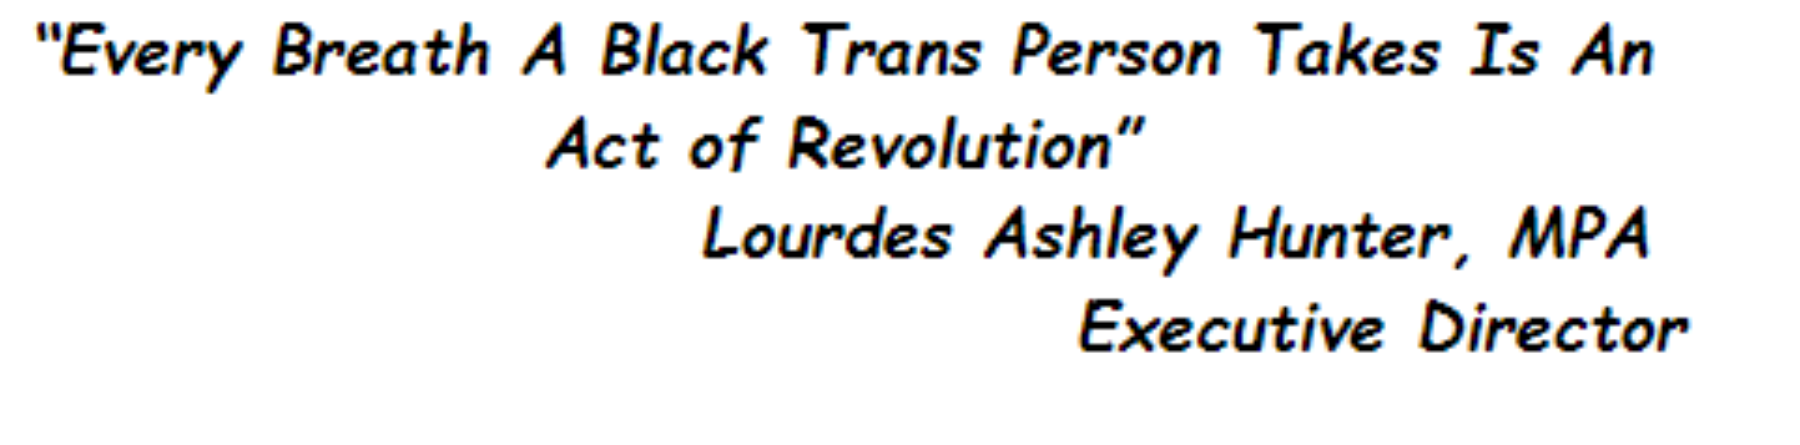 Uplifting the narratives, leadership, and lived experiences of trans people of color